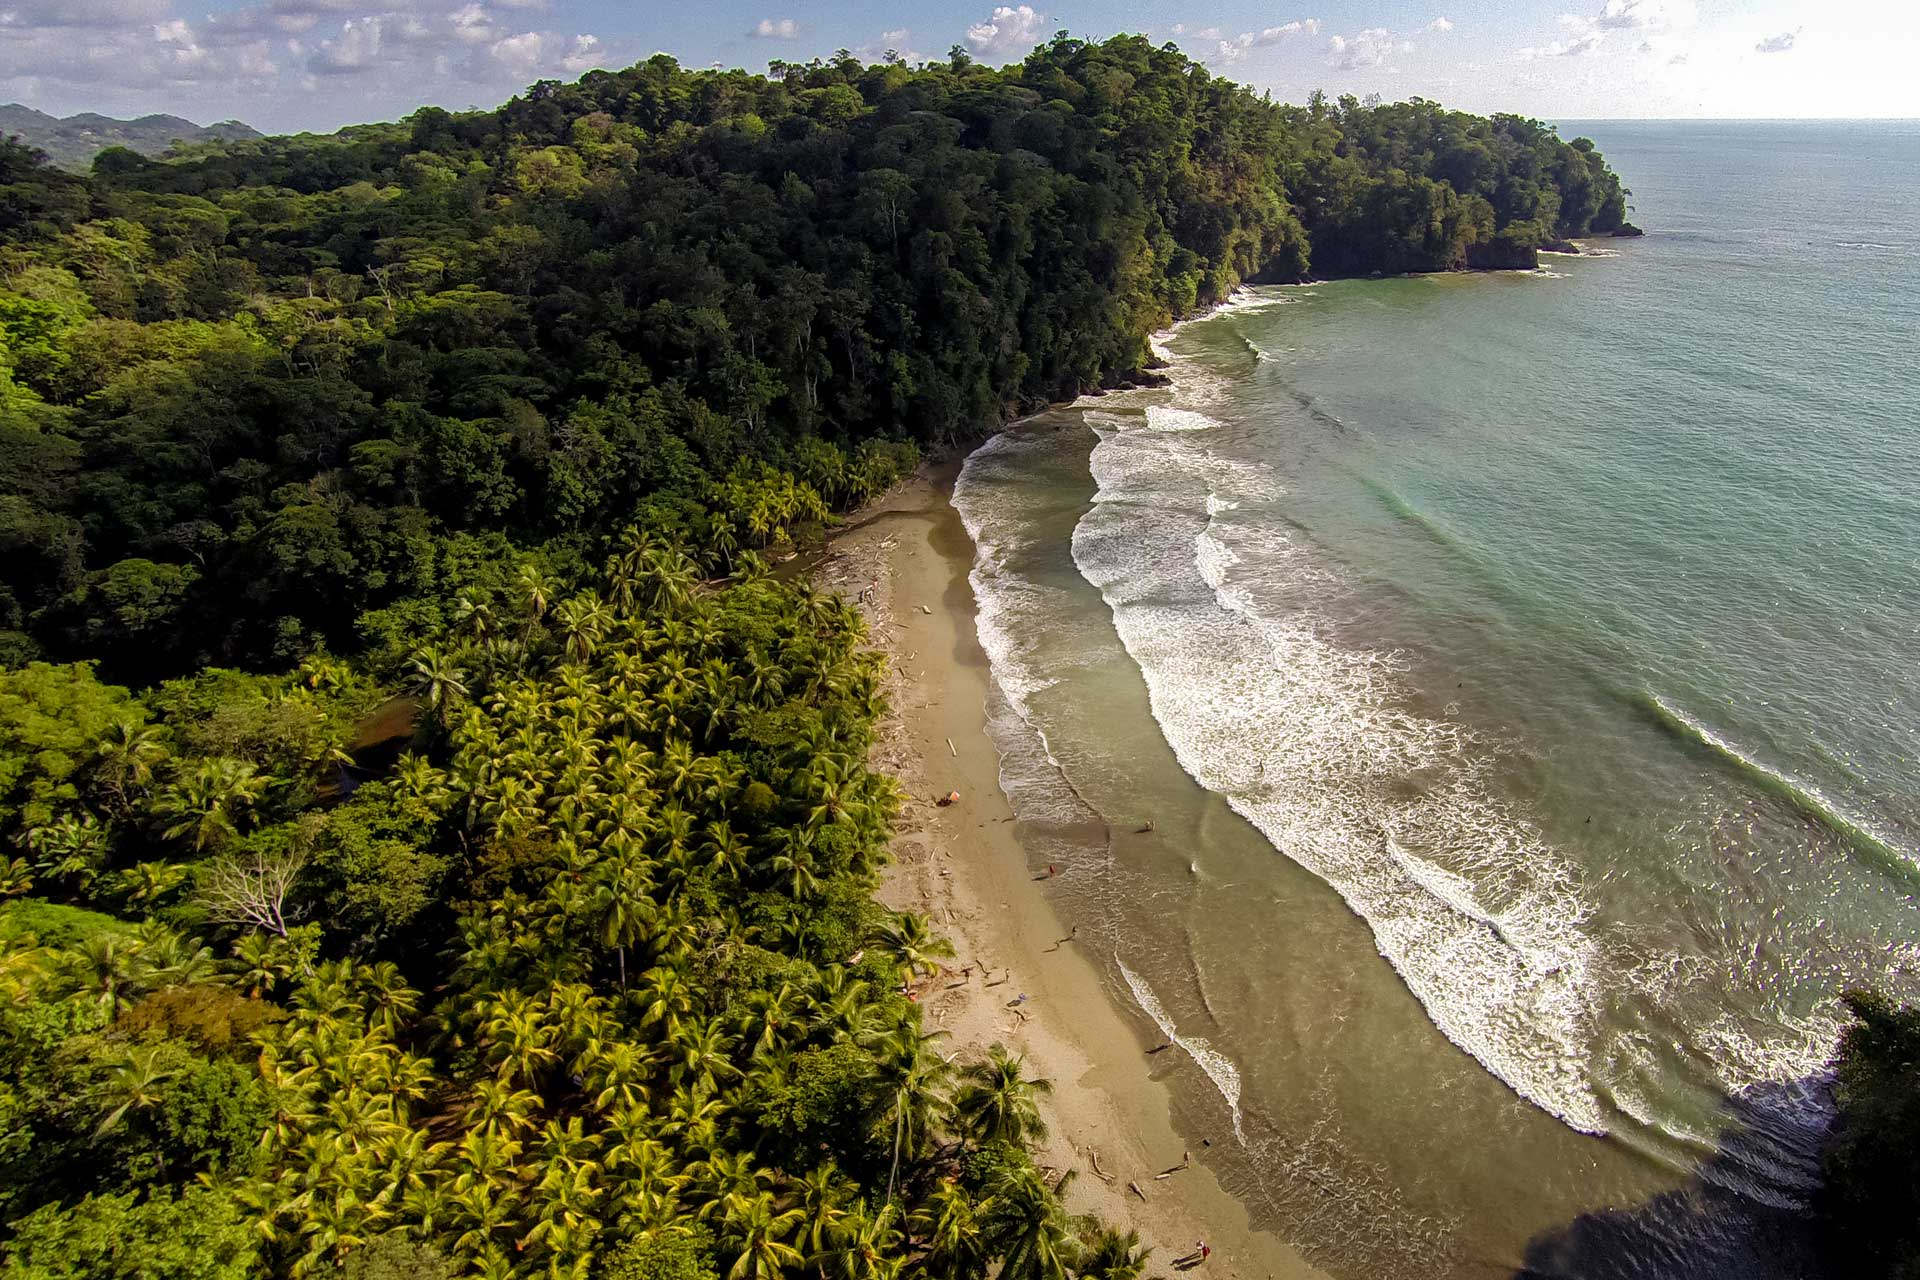 Rainforest and beach, Costa Rica